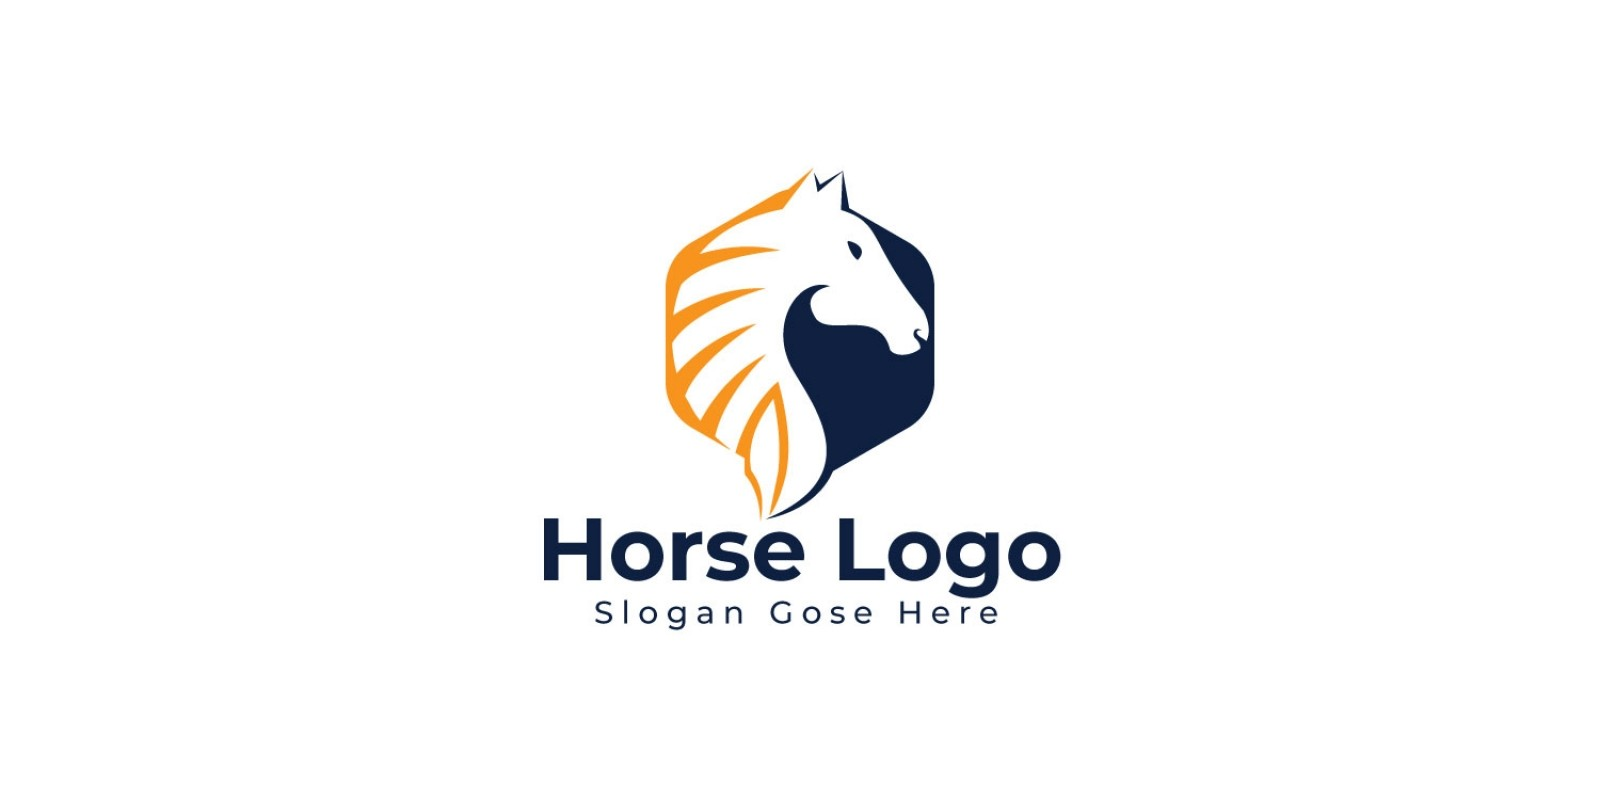 Horse Logo Design By Ikalvi Codester